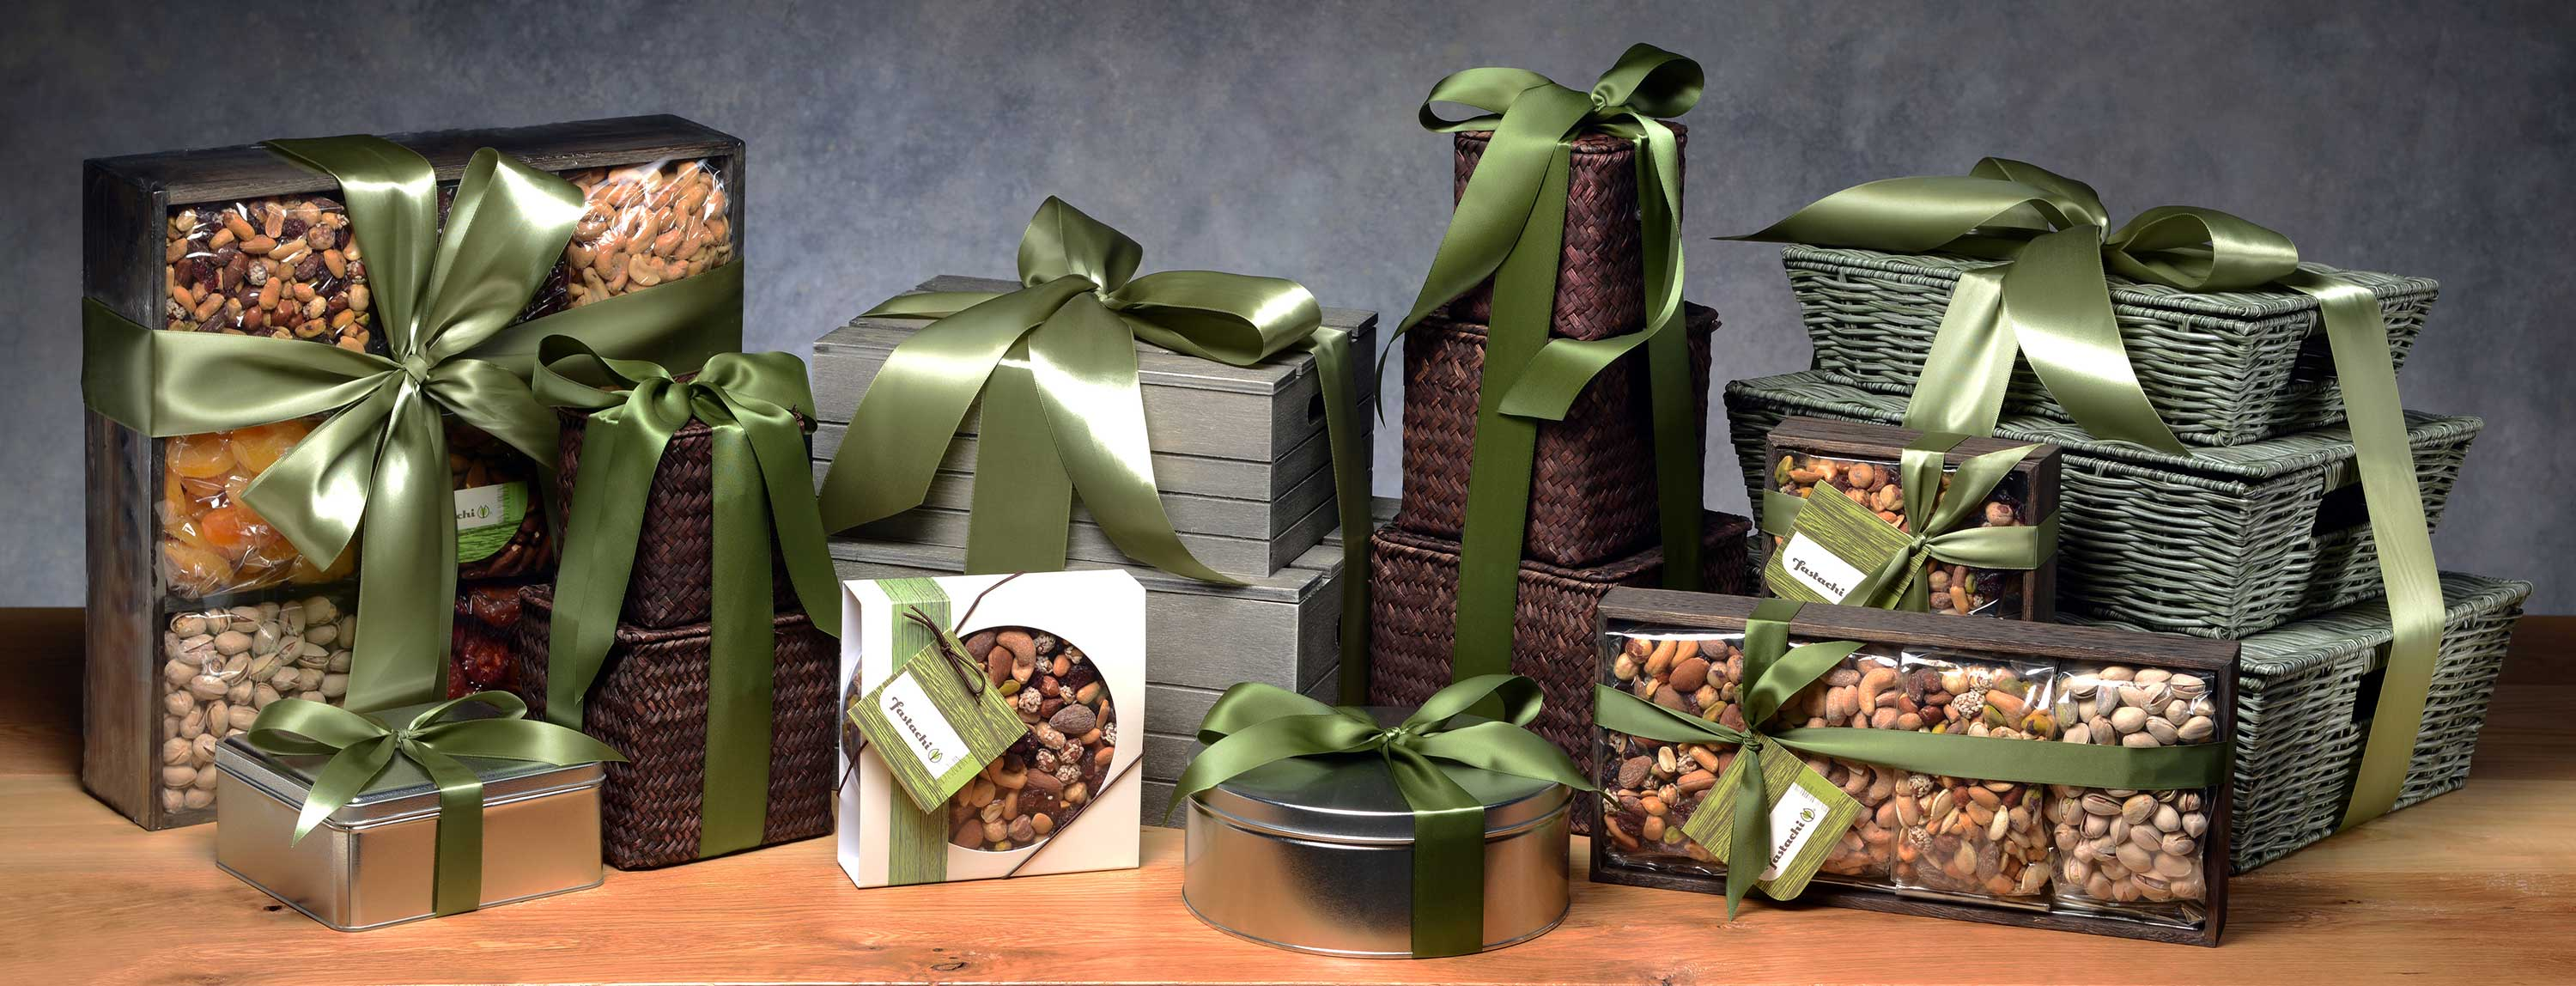 Corporate Gifts: Mixed Nuts, Chocolates, Gift Baskets